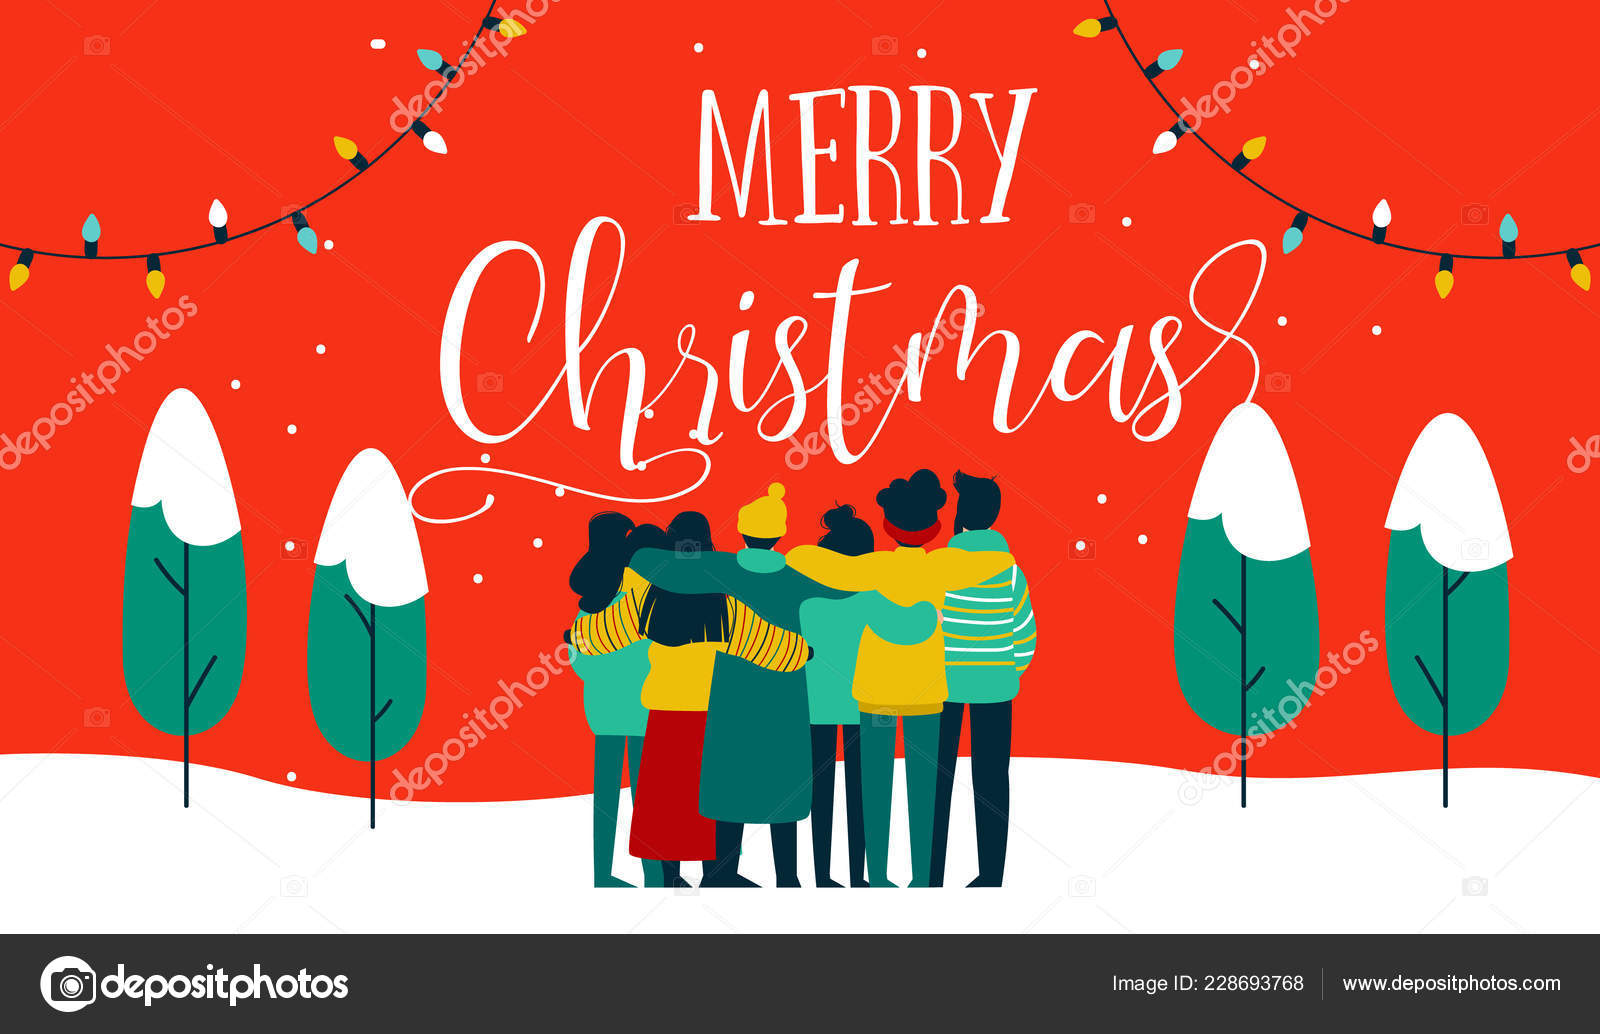 Merry Christmas Greeting Card Illustration Young People Friend Group Hugging Stock Vector C Cienpies 228693768